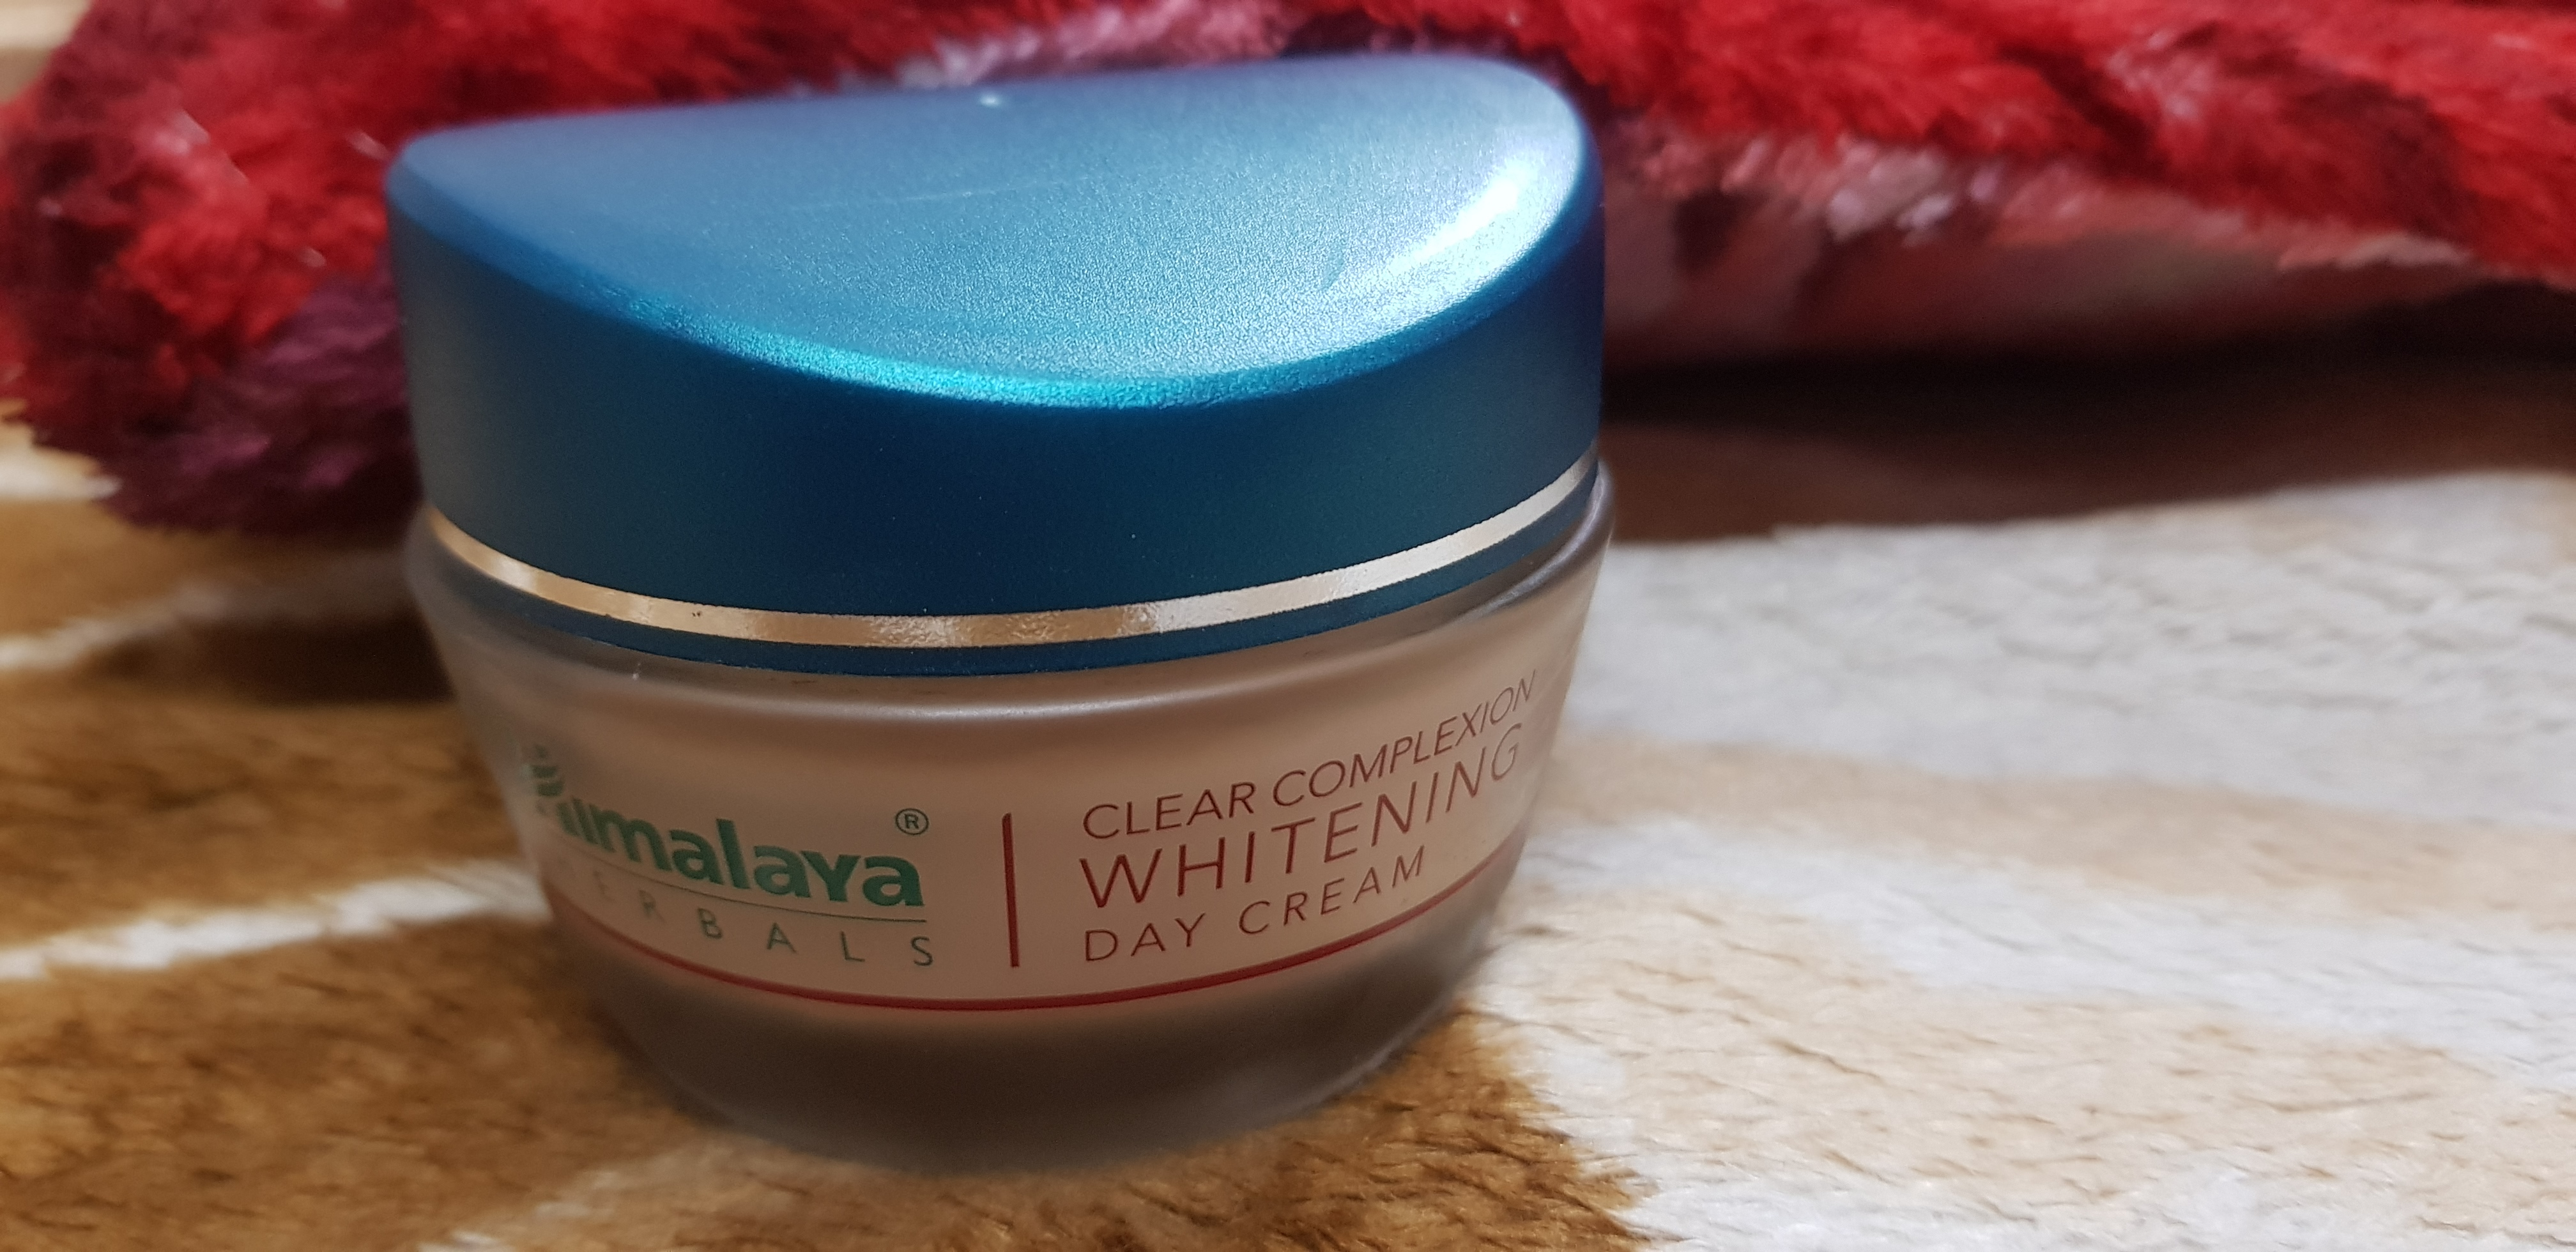 Himalaya Herbals Clear Complexion Whitening Day Cream-Goodness of Nature!-By poonam_kakkar